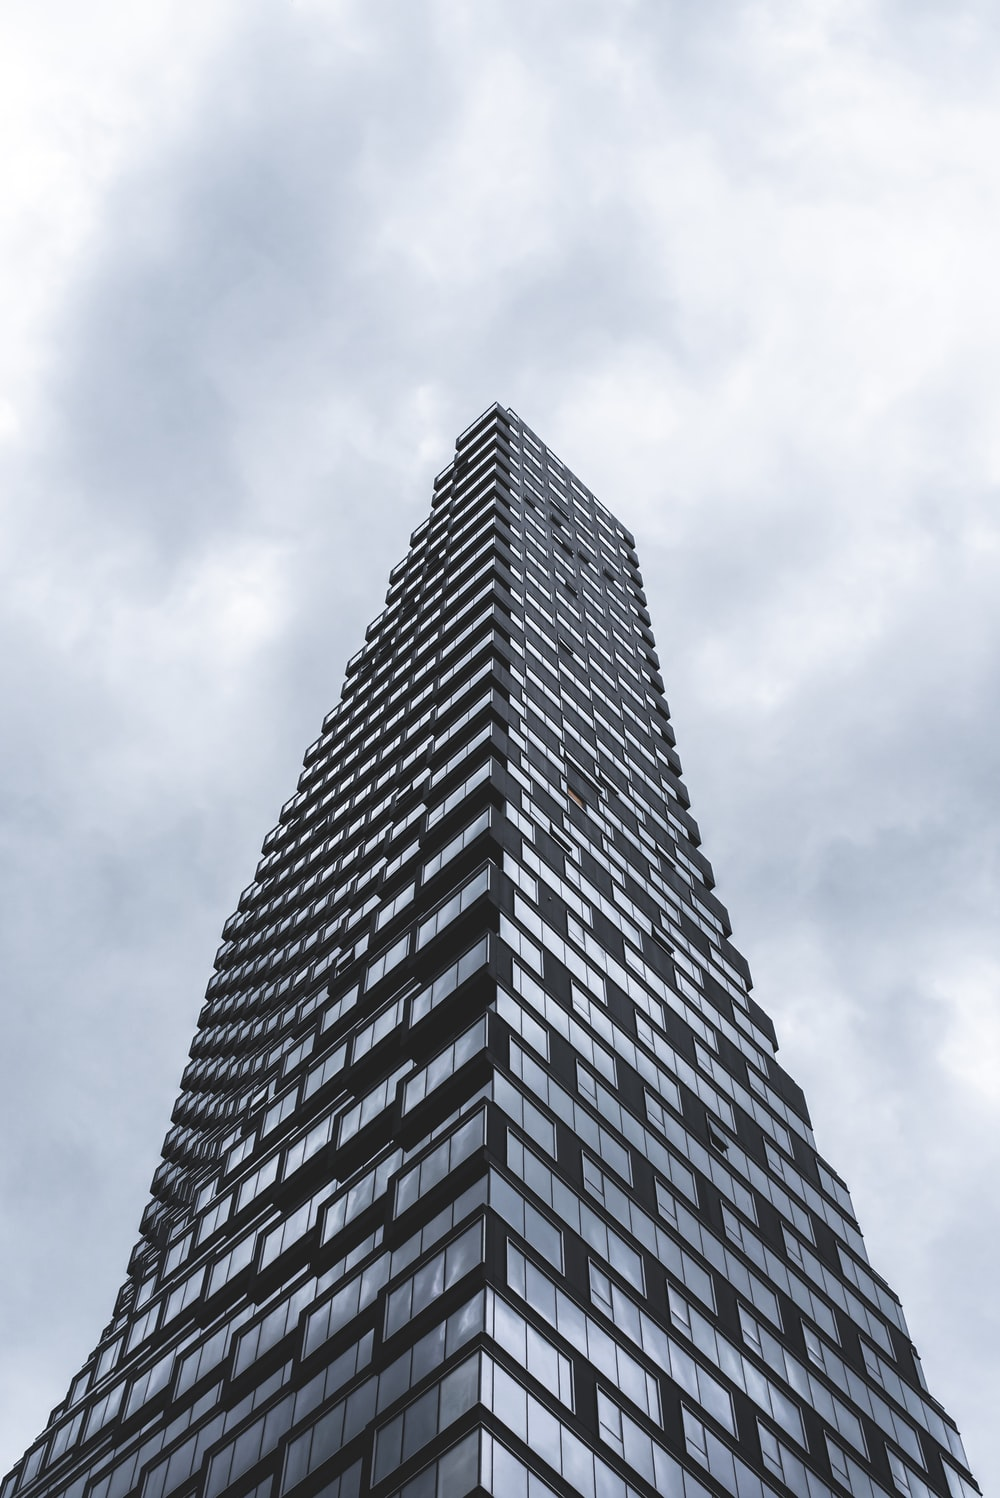 gray concrete building under cloudy sky during daytime